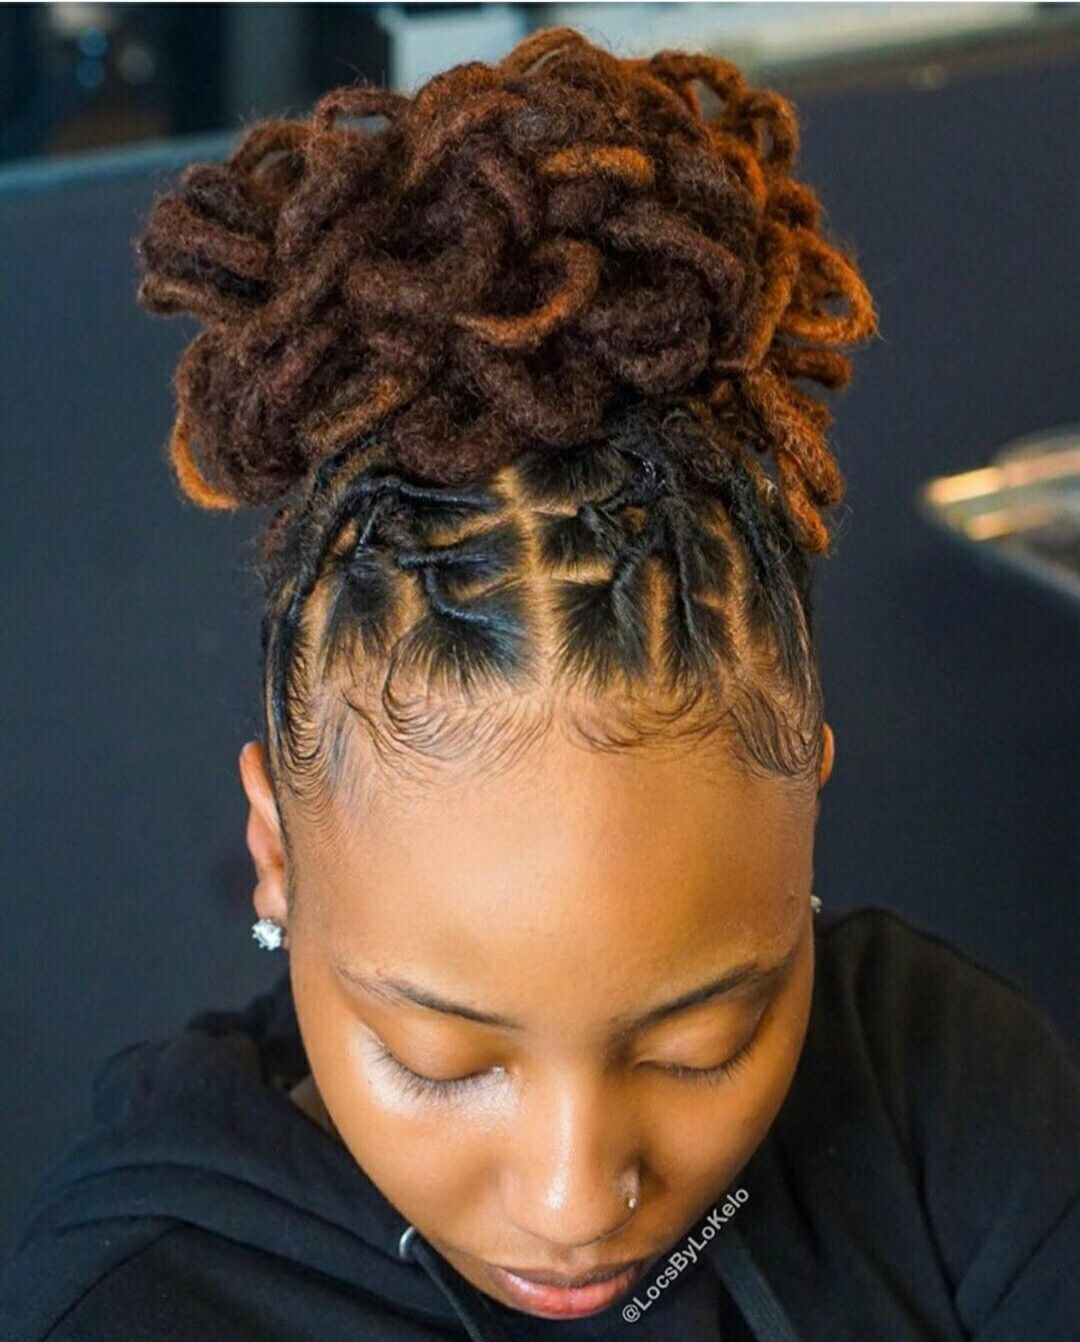 Pin By Tiffany Smith On My Dreads In 2020 Short Locs Hairstyles Locs Hairstyles Dreadlock Hairstyles